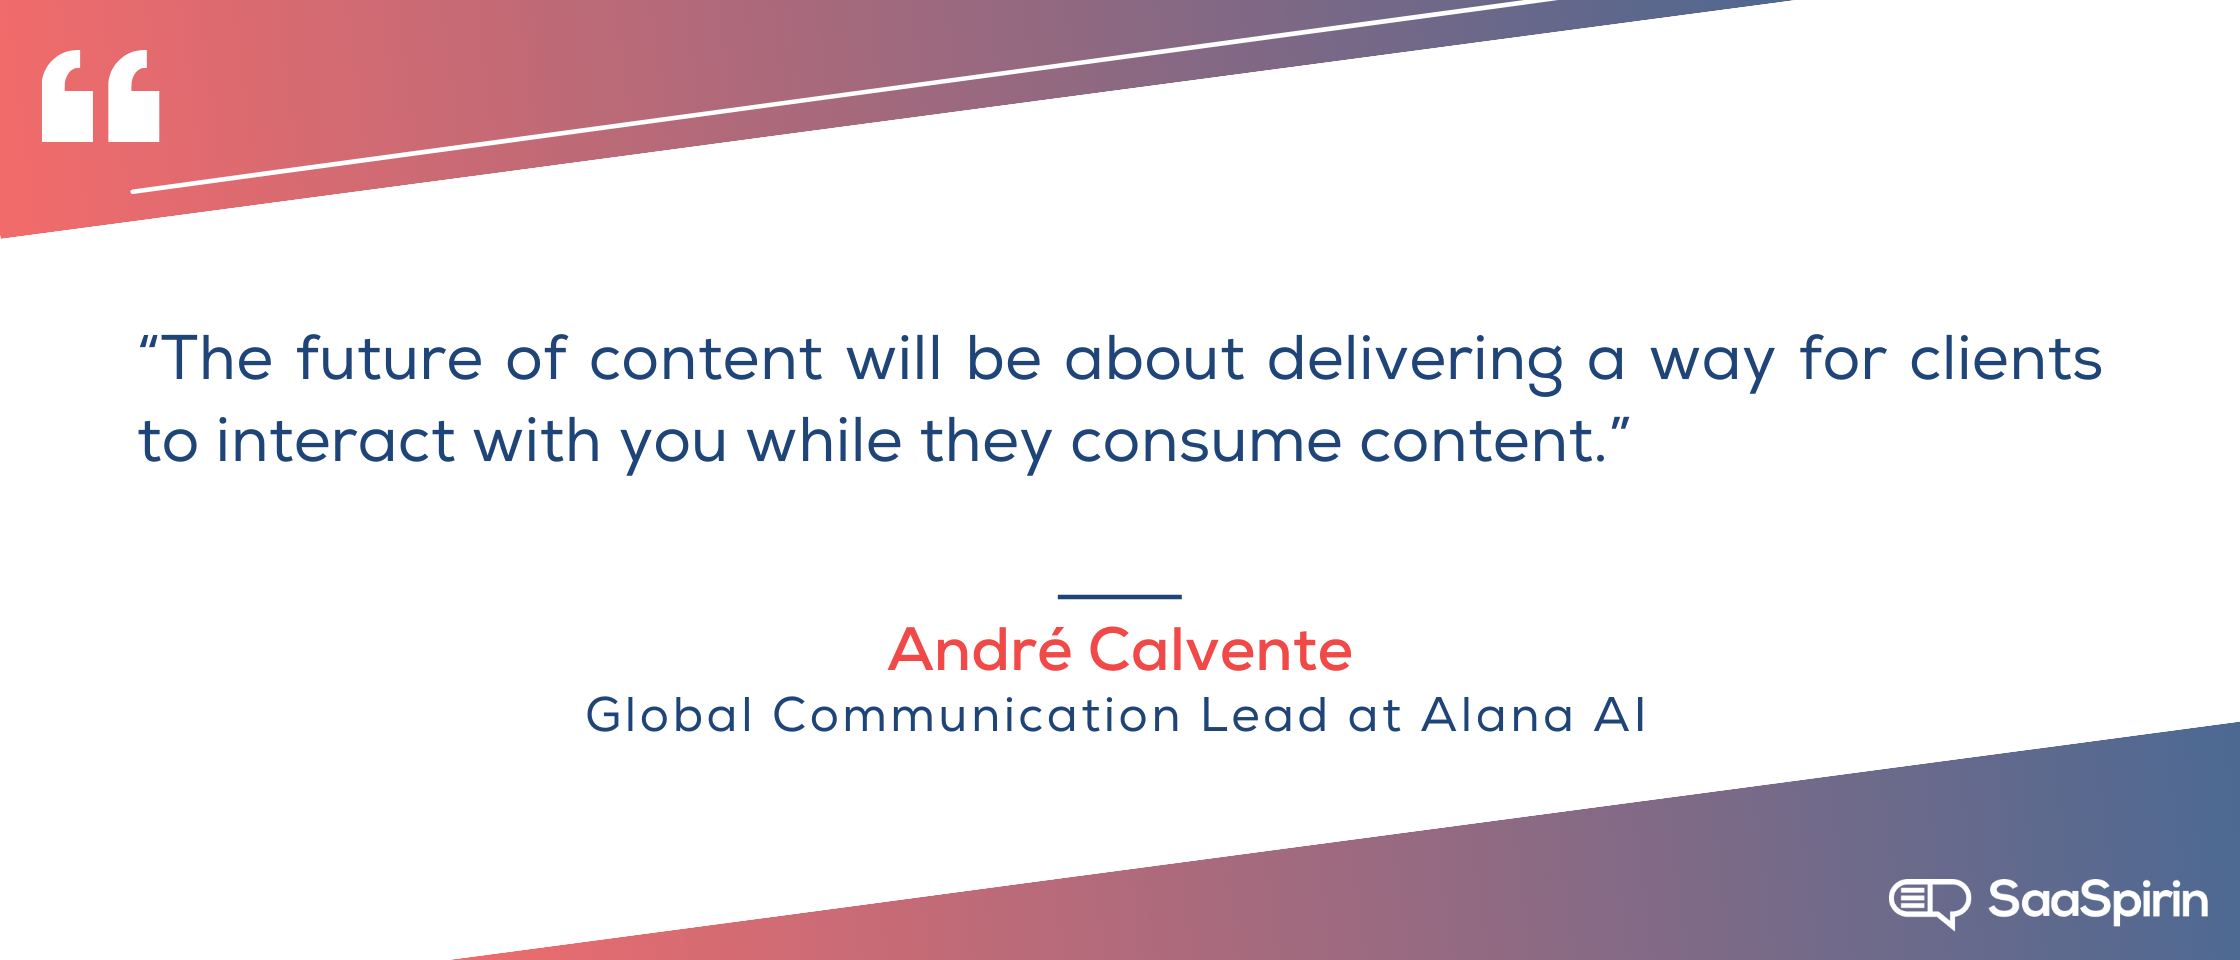 The-future-of-content-will-be-about-delivering-a-way-for-clients-to-interact-with-you-while-they-consume-content.png